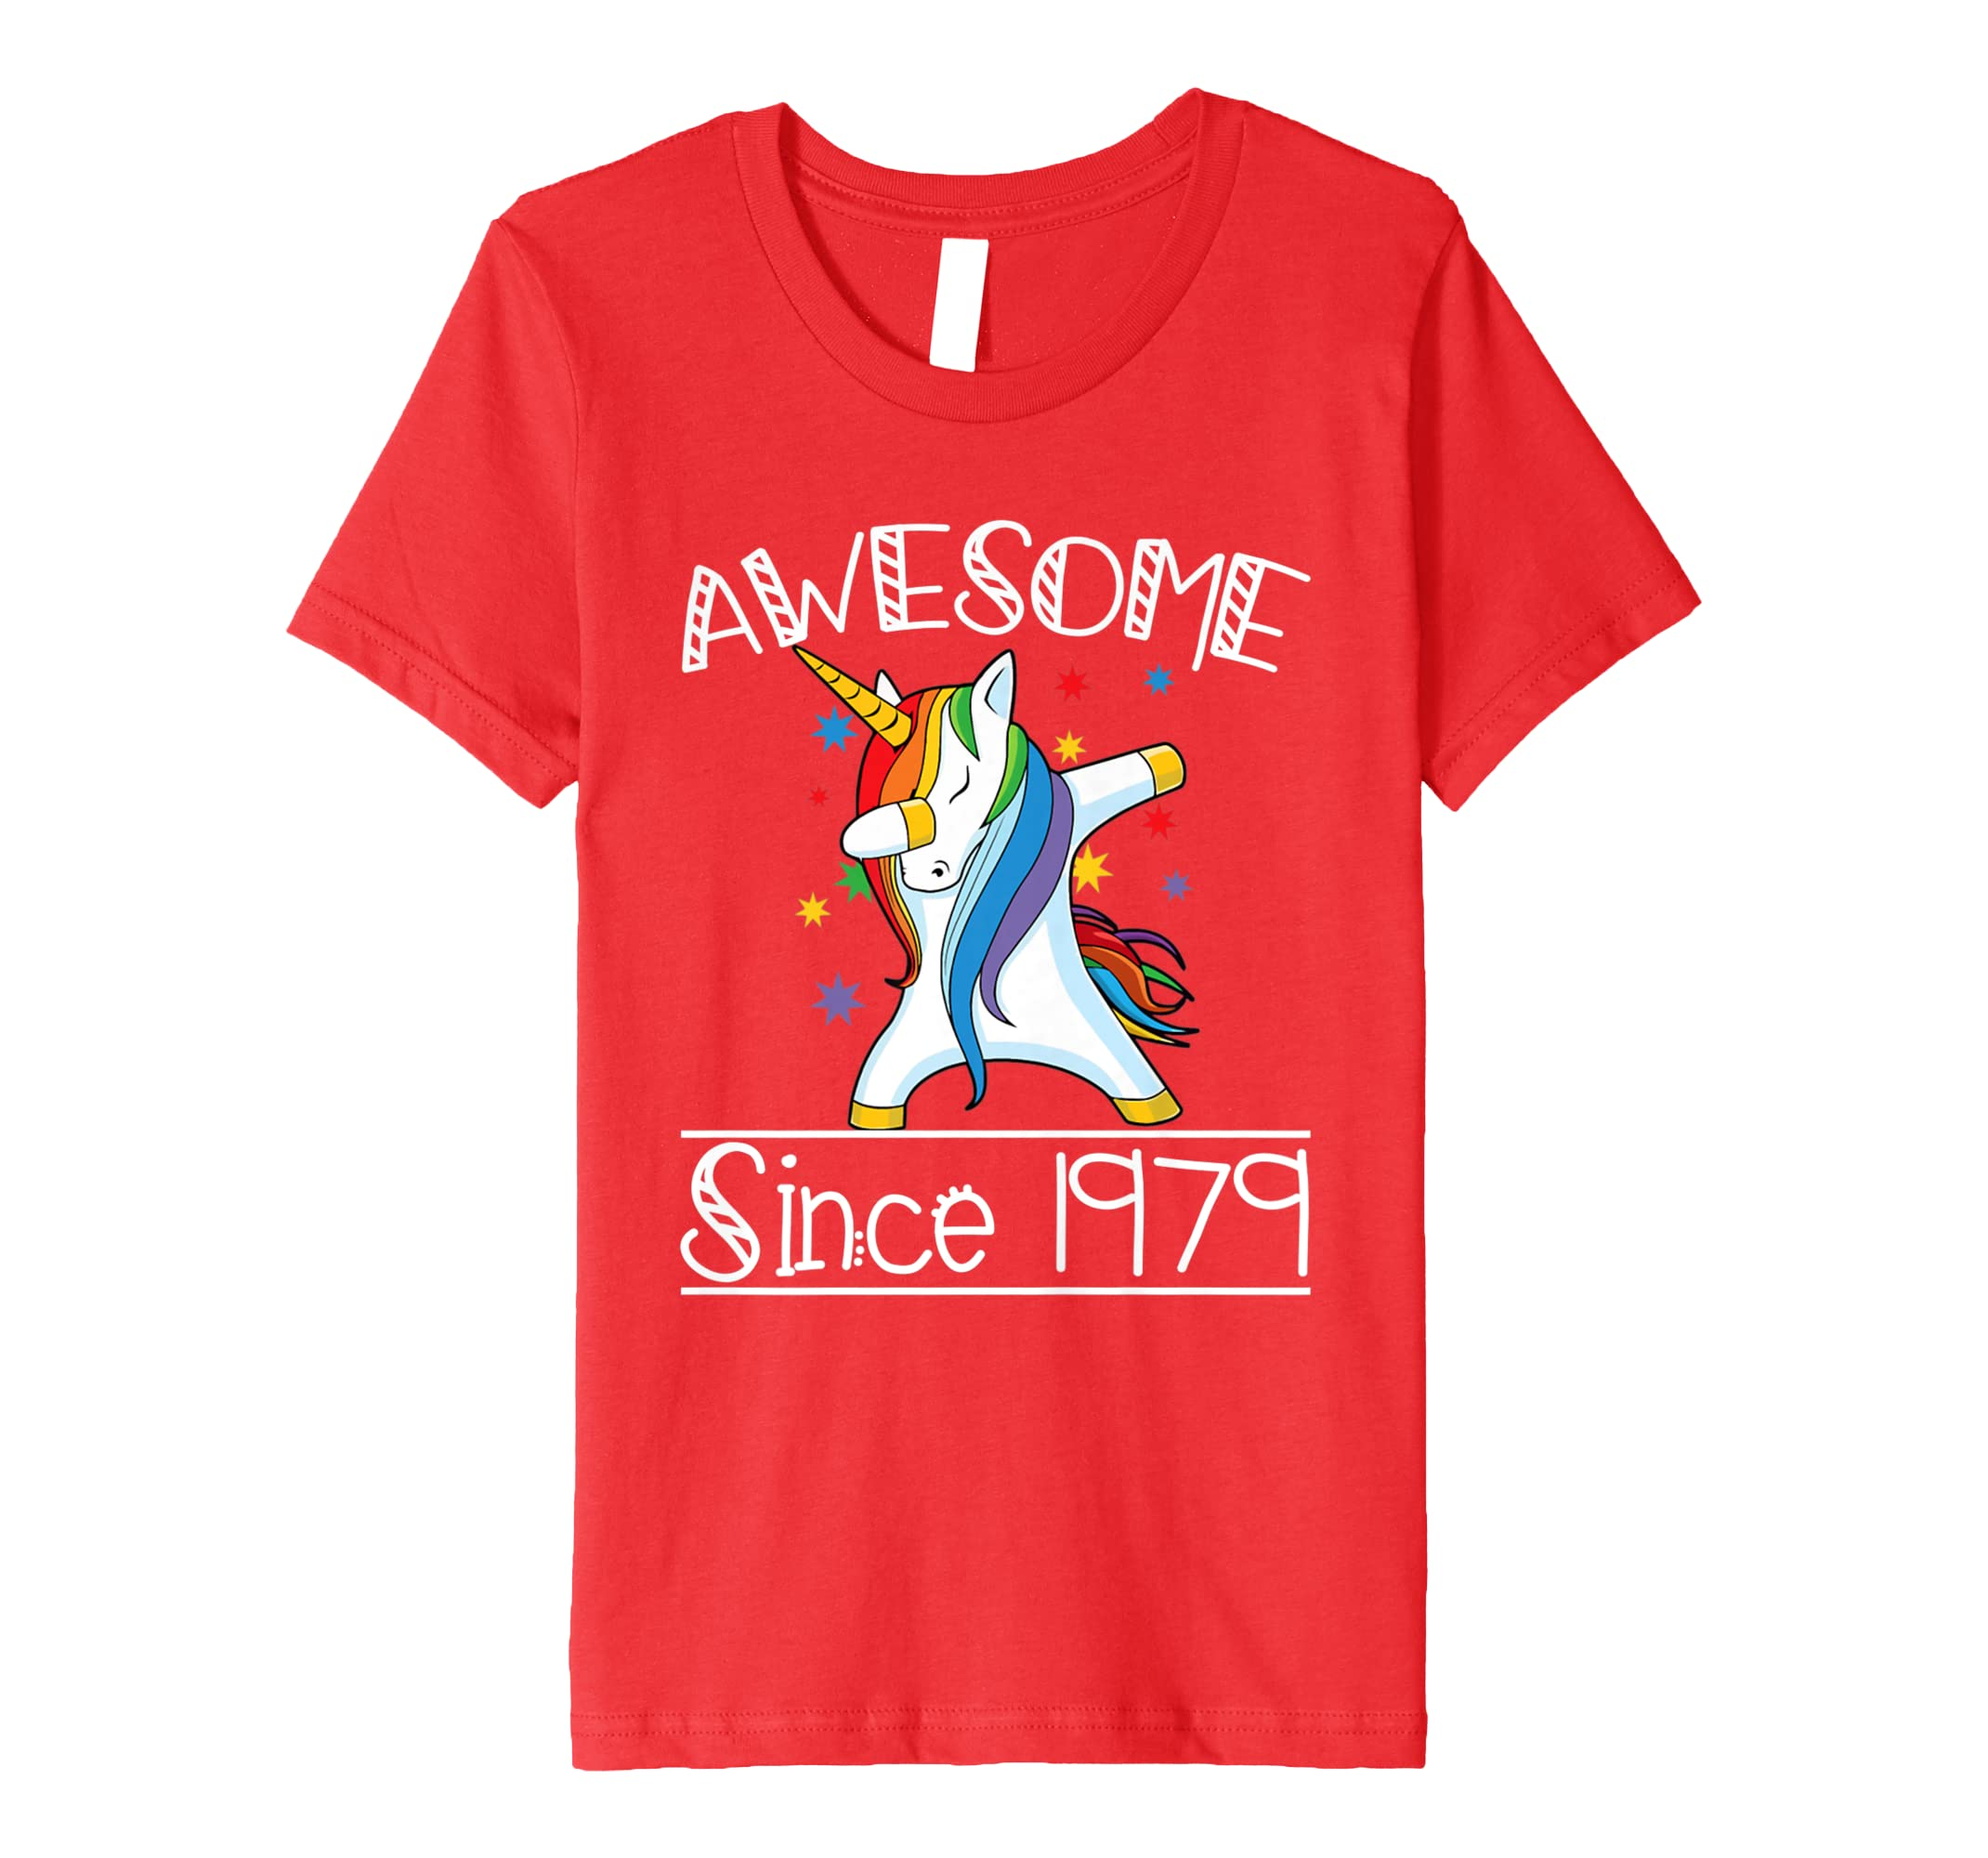 39th Birthday Gifts Vintage 79 Awesome Since 1979-Teechatpro